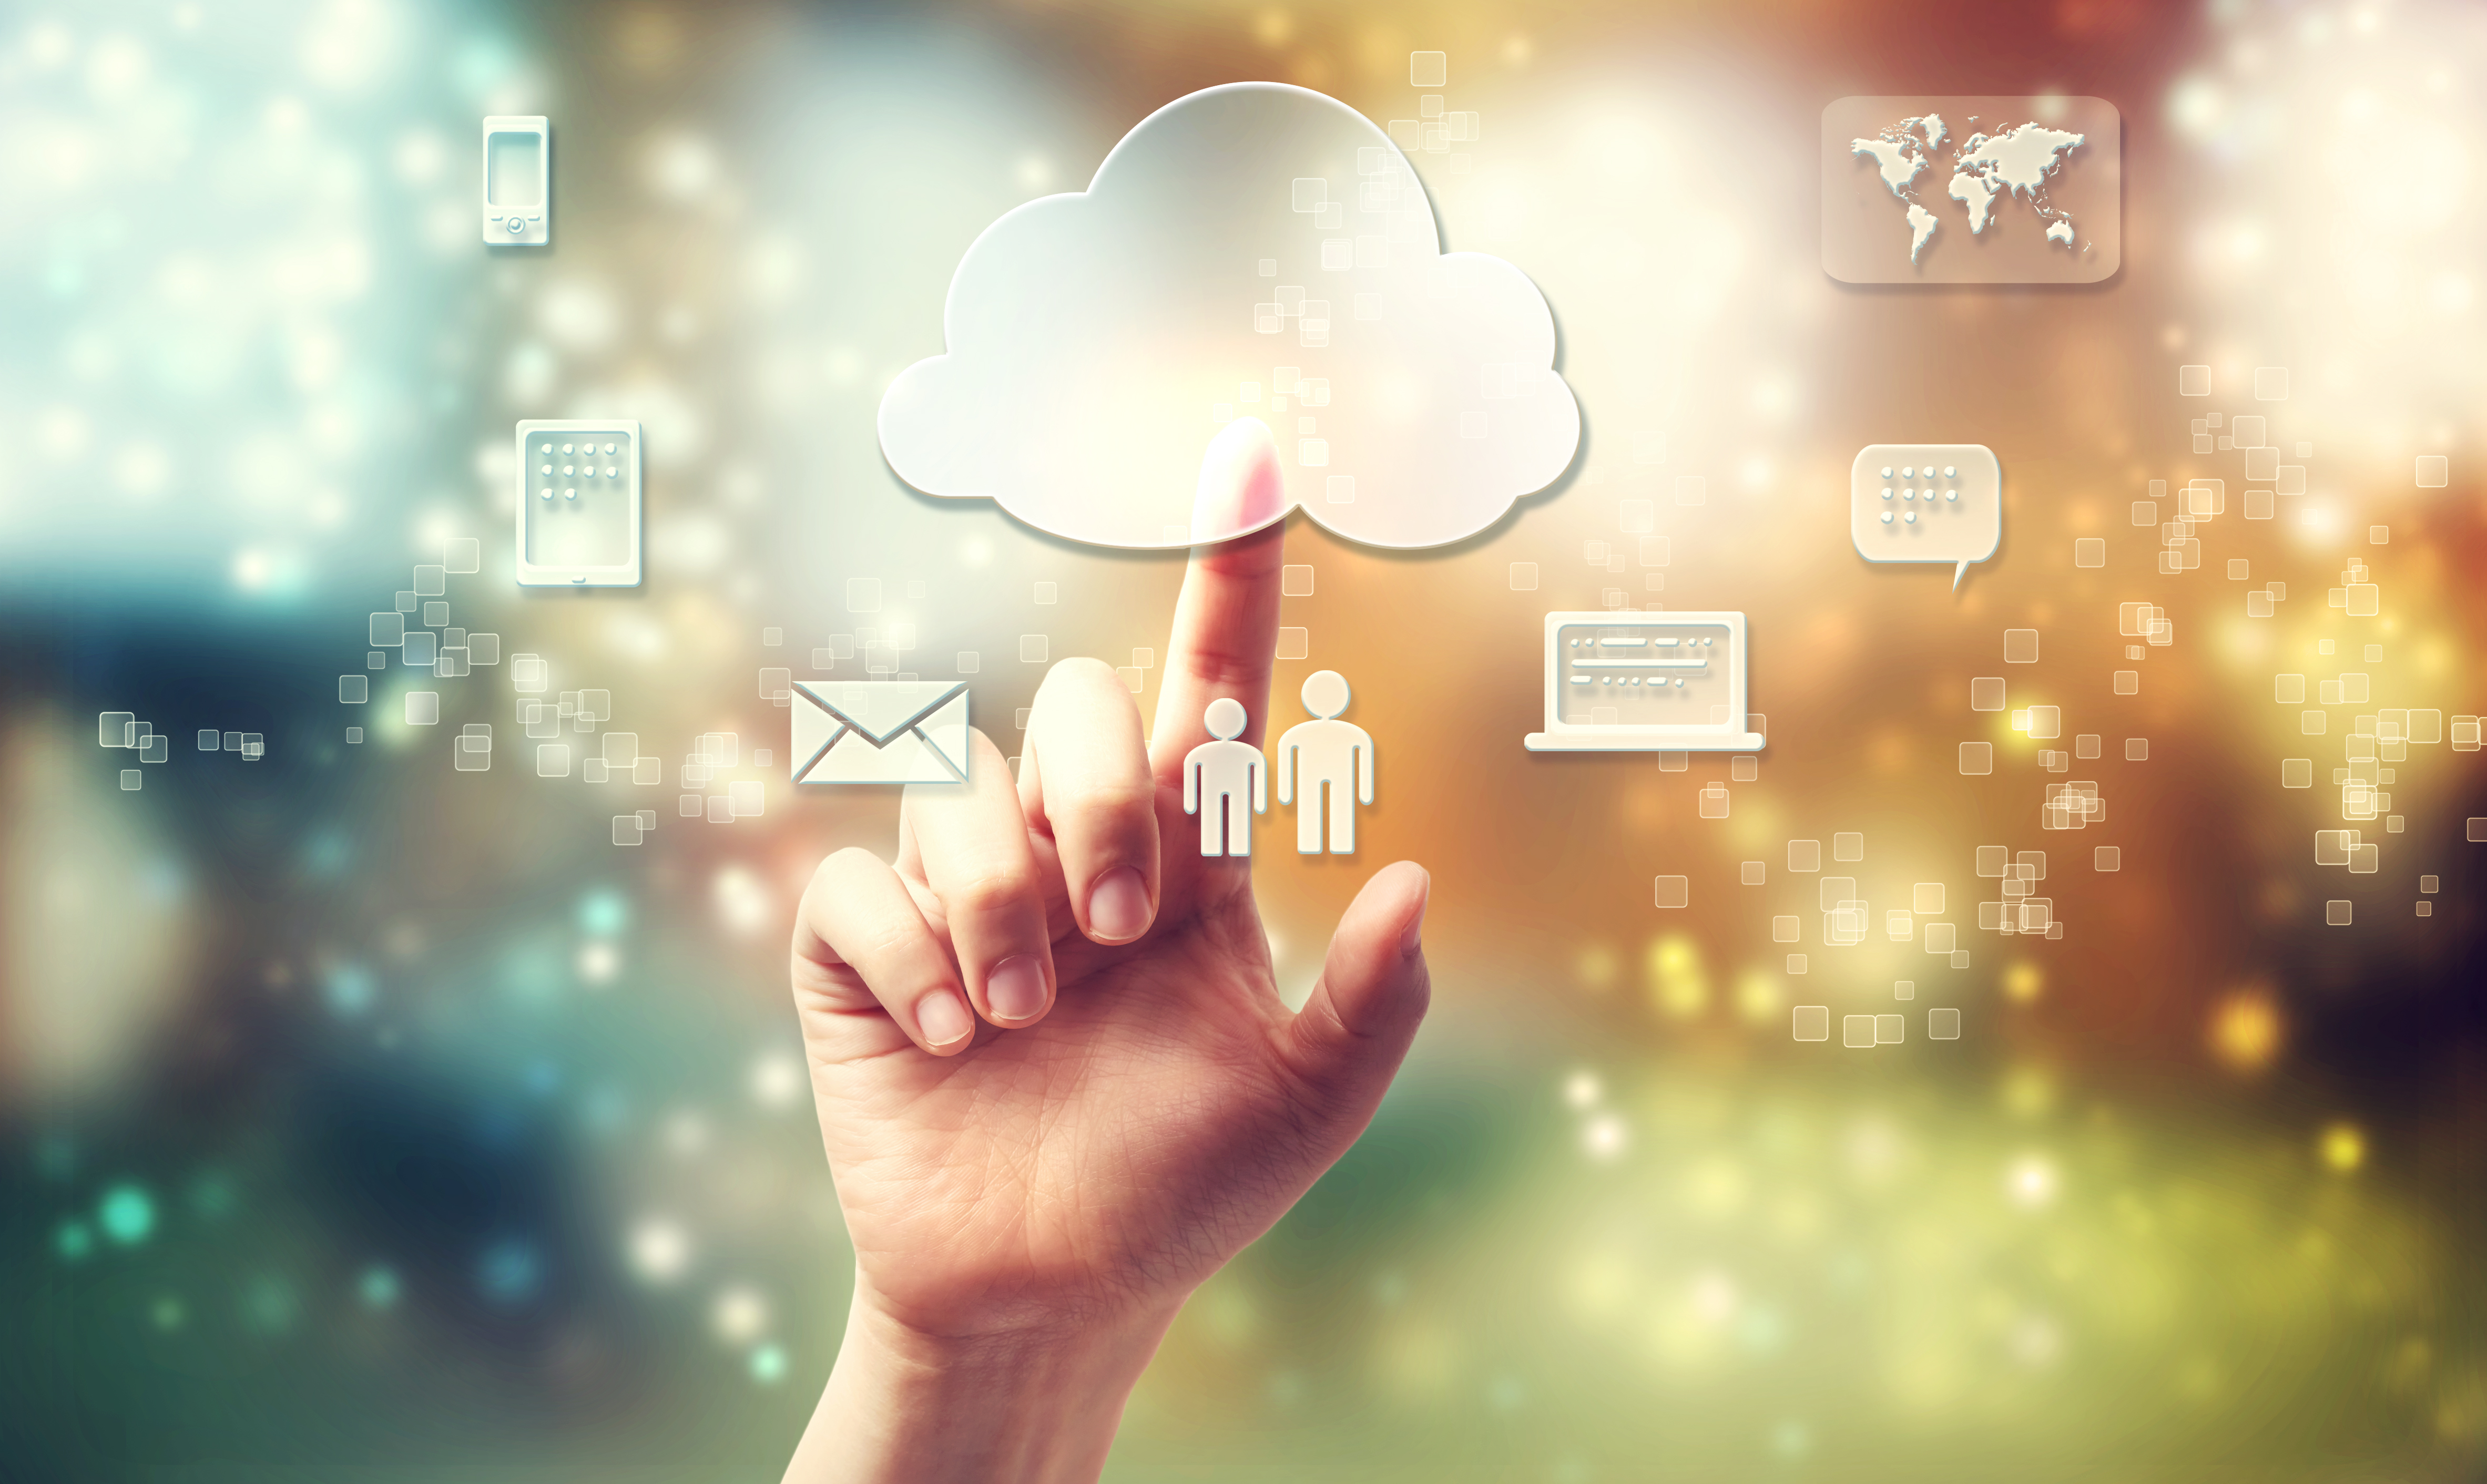 Public Cloud Services Market to Grow 18% to $246.8 Billion in 2017, Gartner says